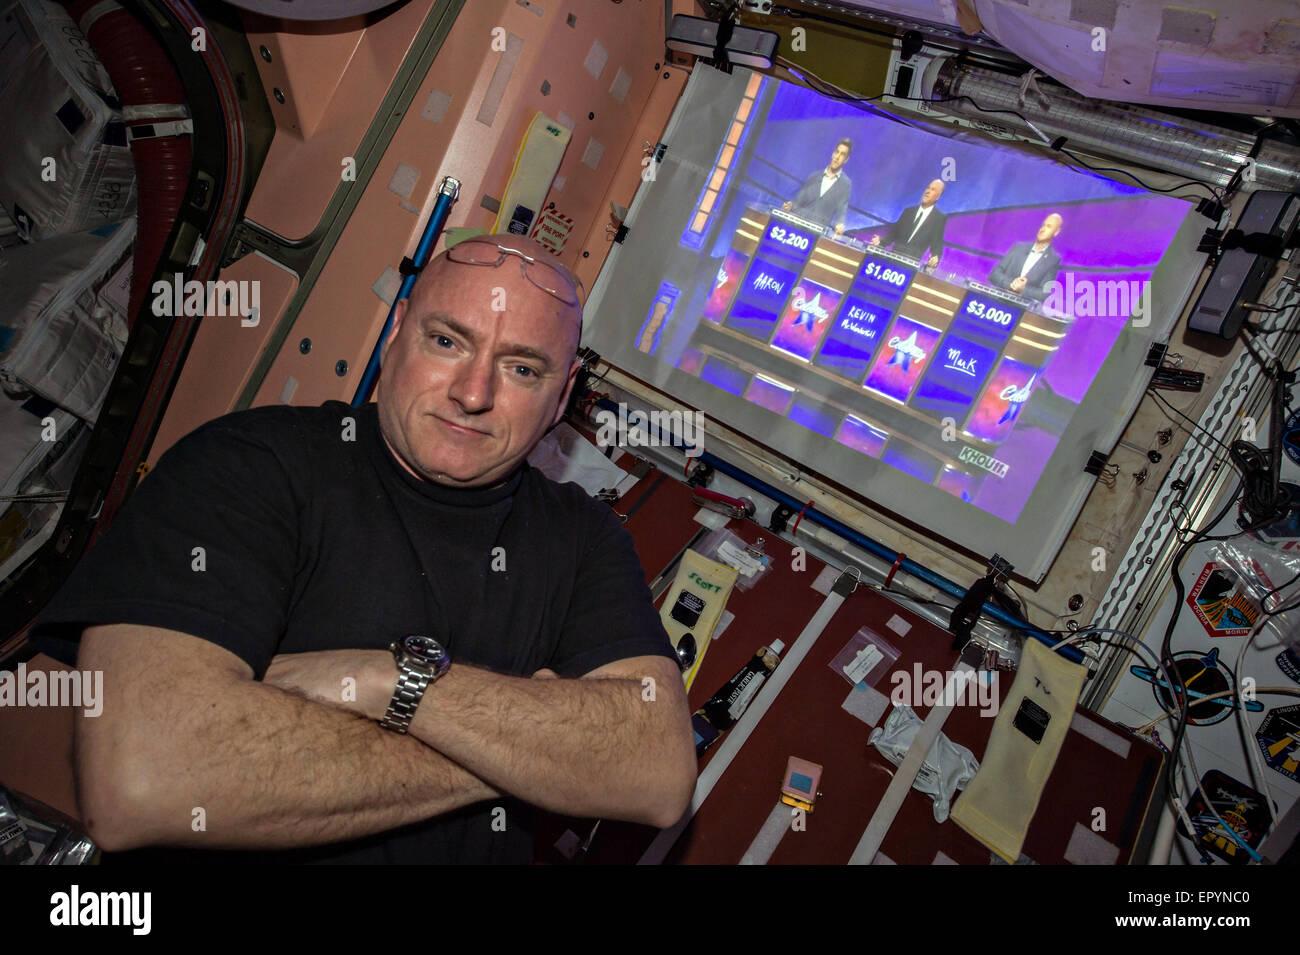 Expedition 43 NASA astronaut Scott Kelly shows his support for his twin brother former astronaut Mark Kelly as he - Stock Image